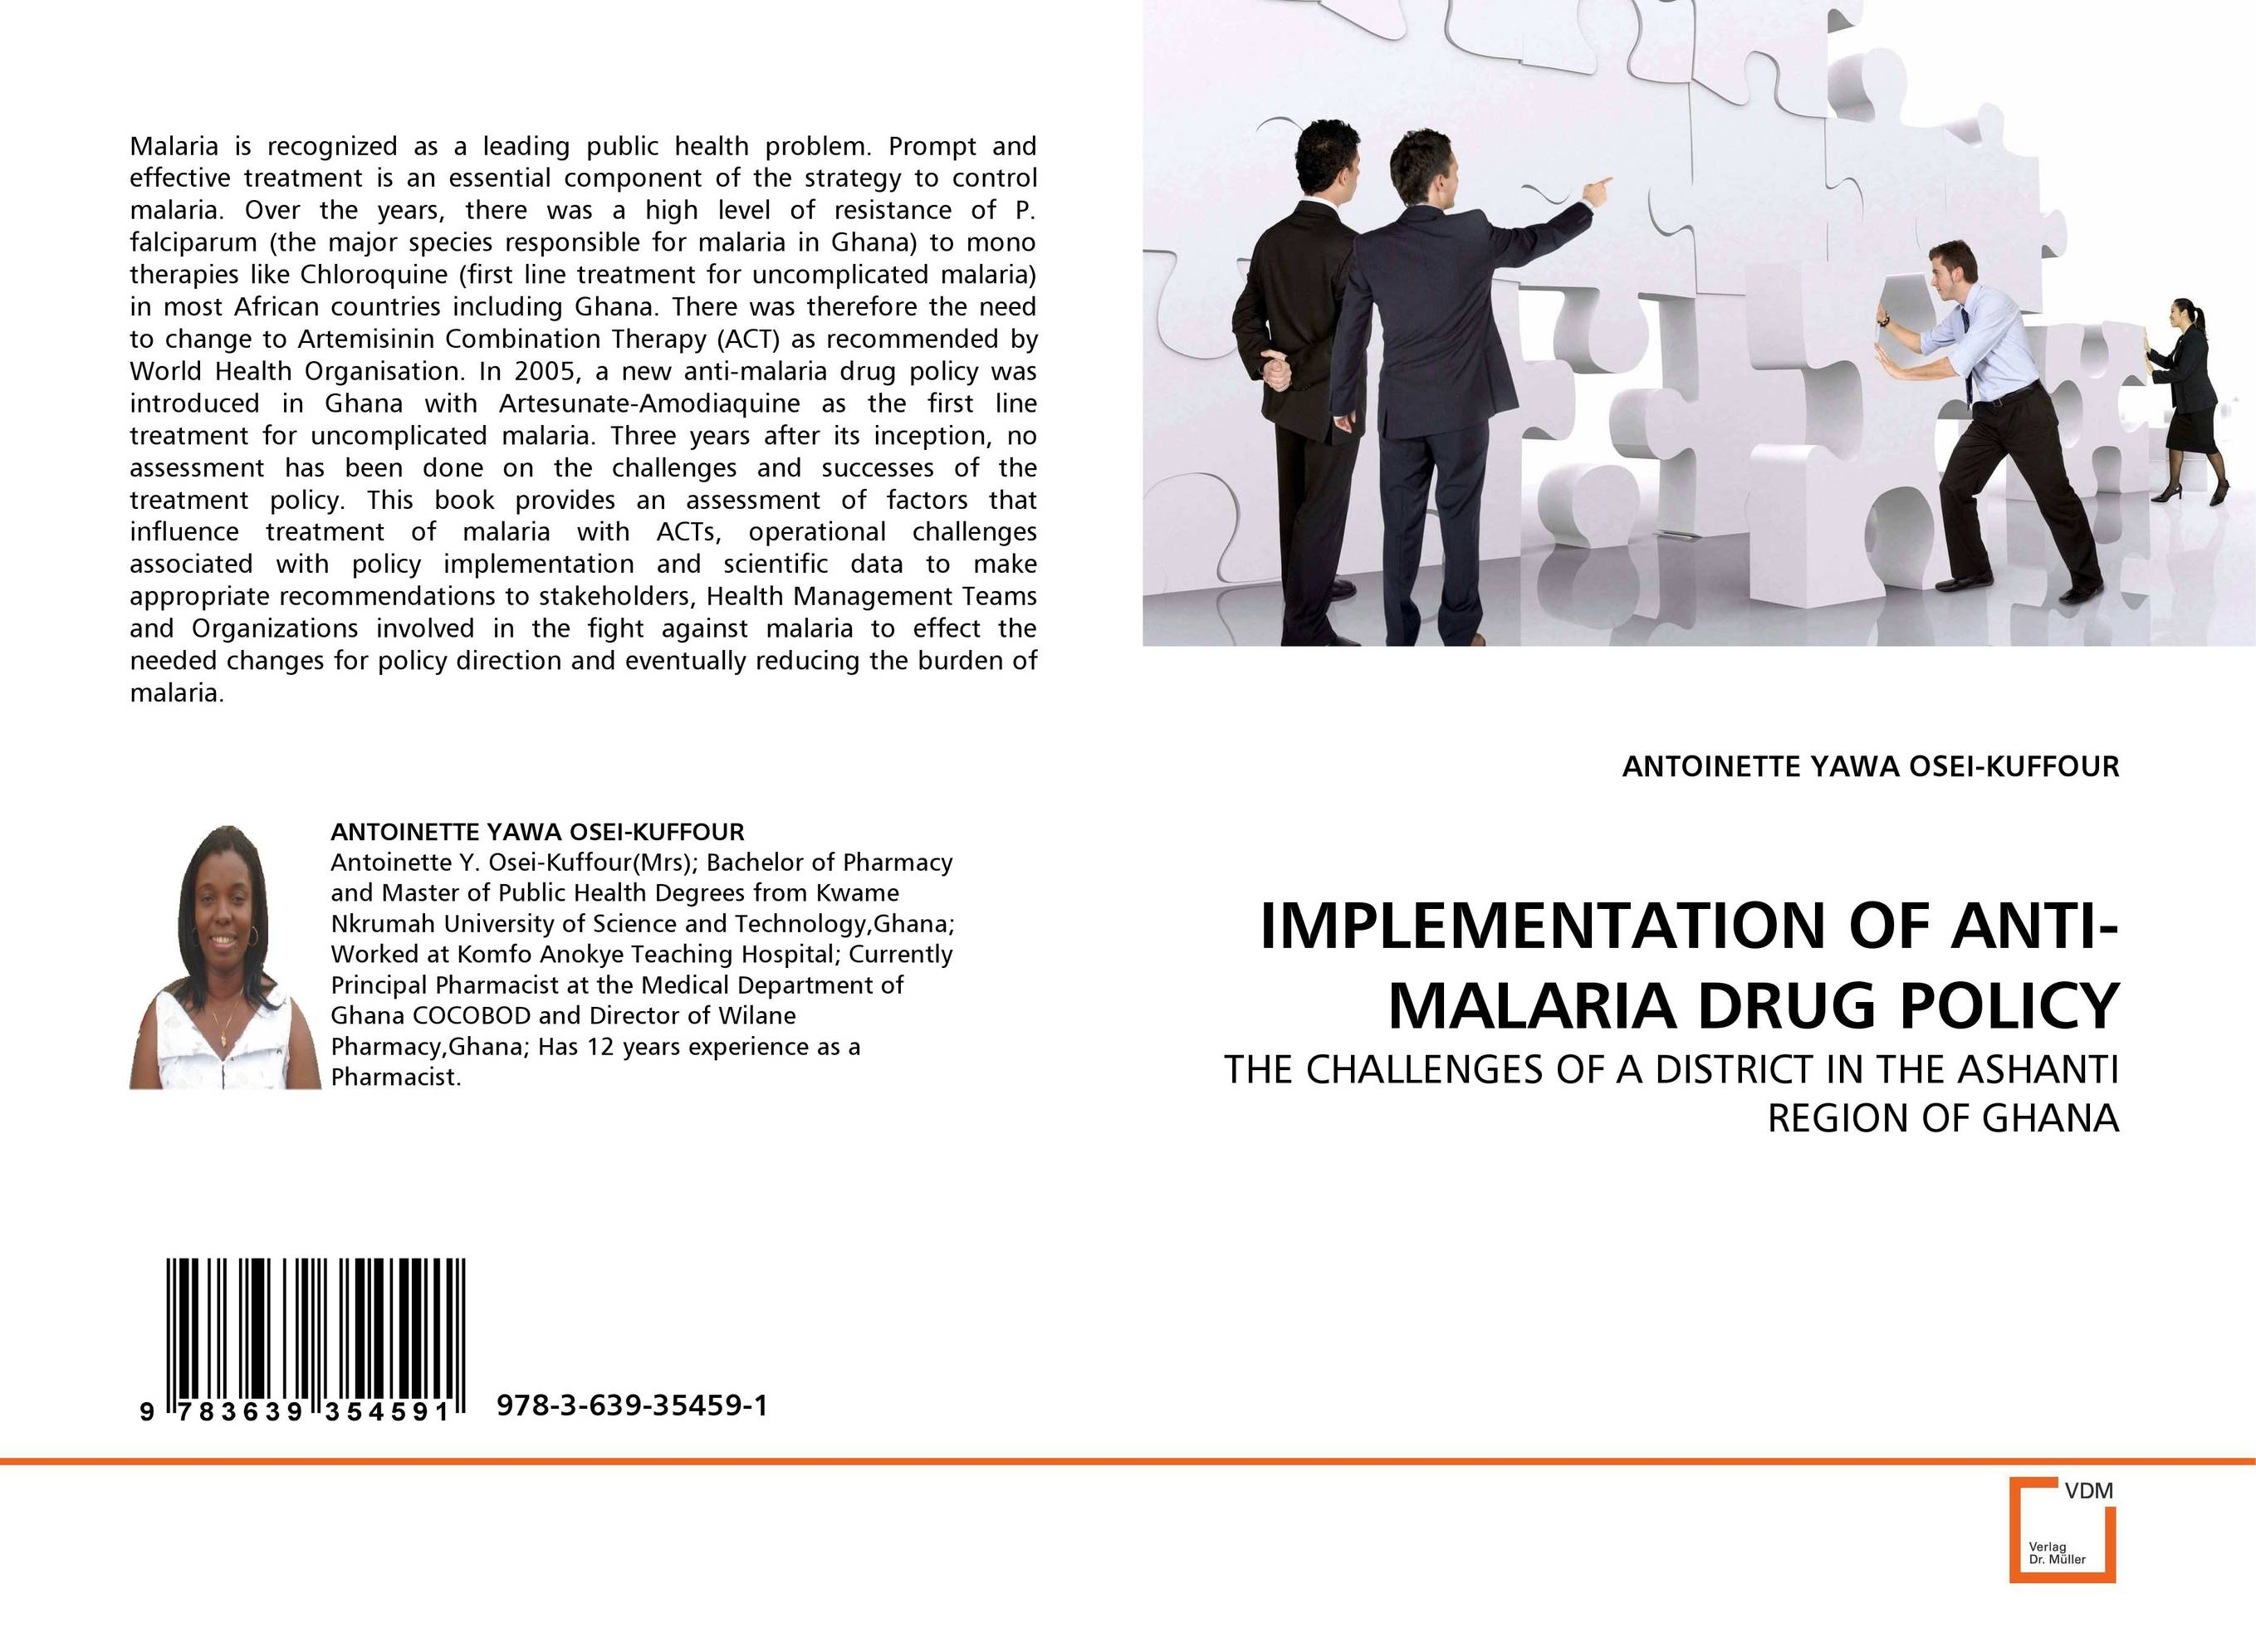 IMPLEMENTATION OF ANTI-MALARIA DRUG POLICY laari prosper a a duker and frank osei badu spatial analysis of malaria amansie west ghana